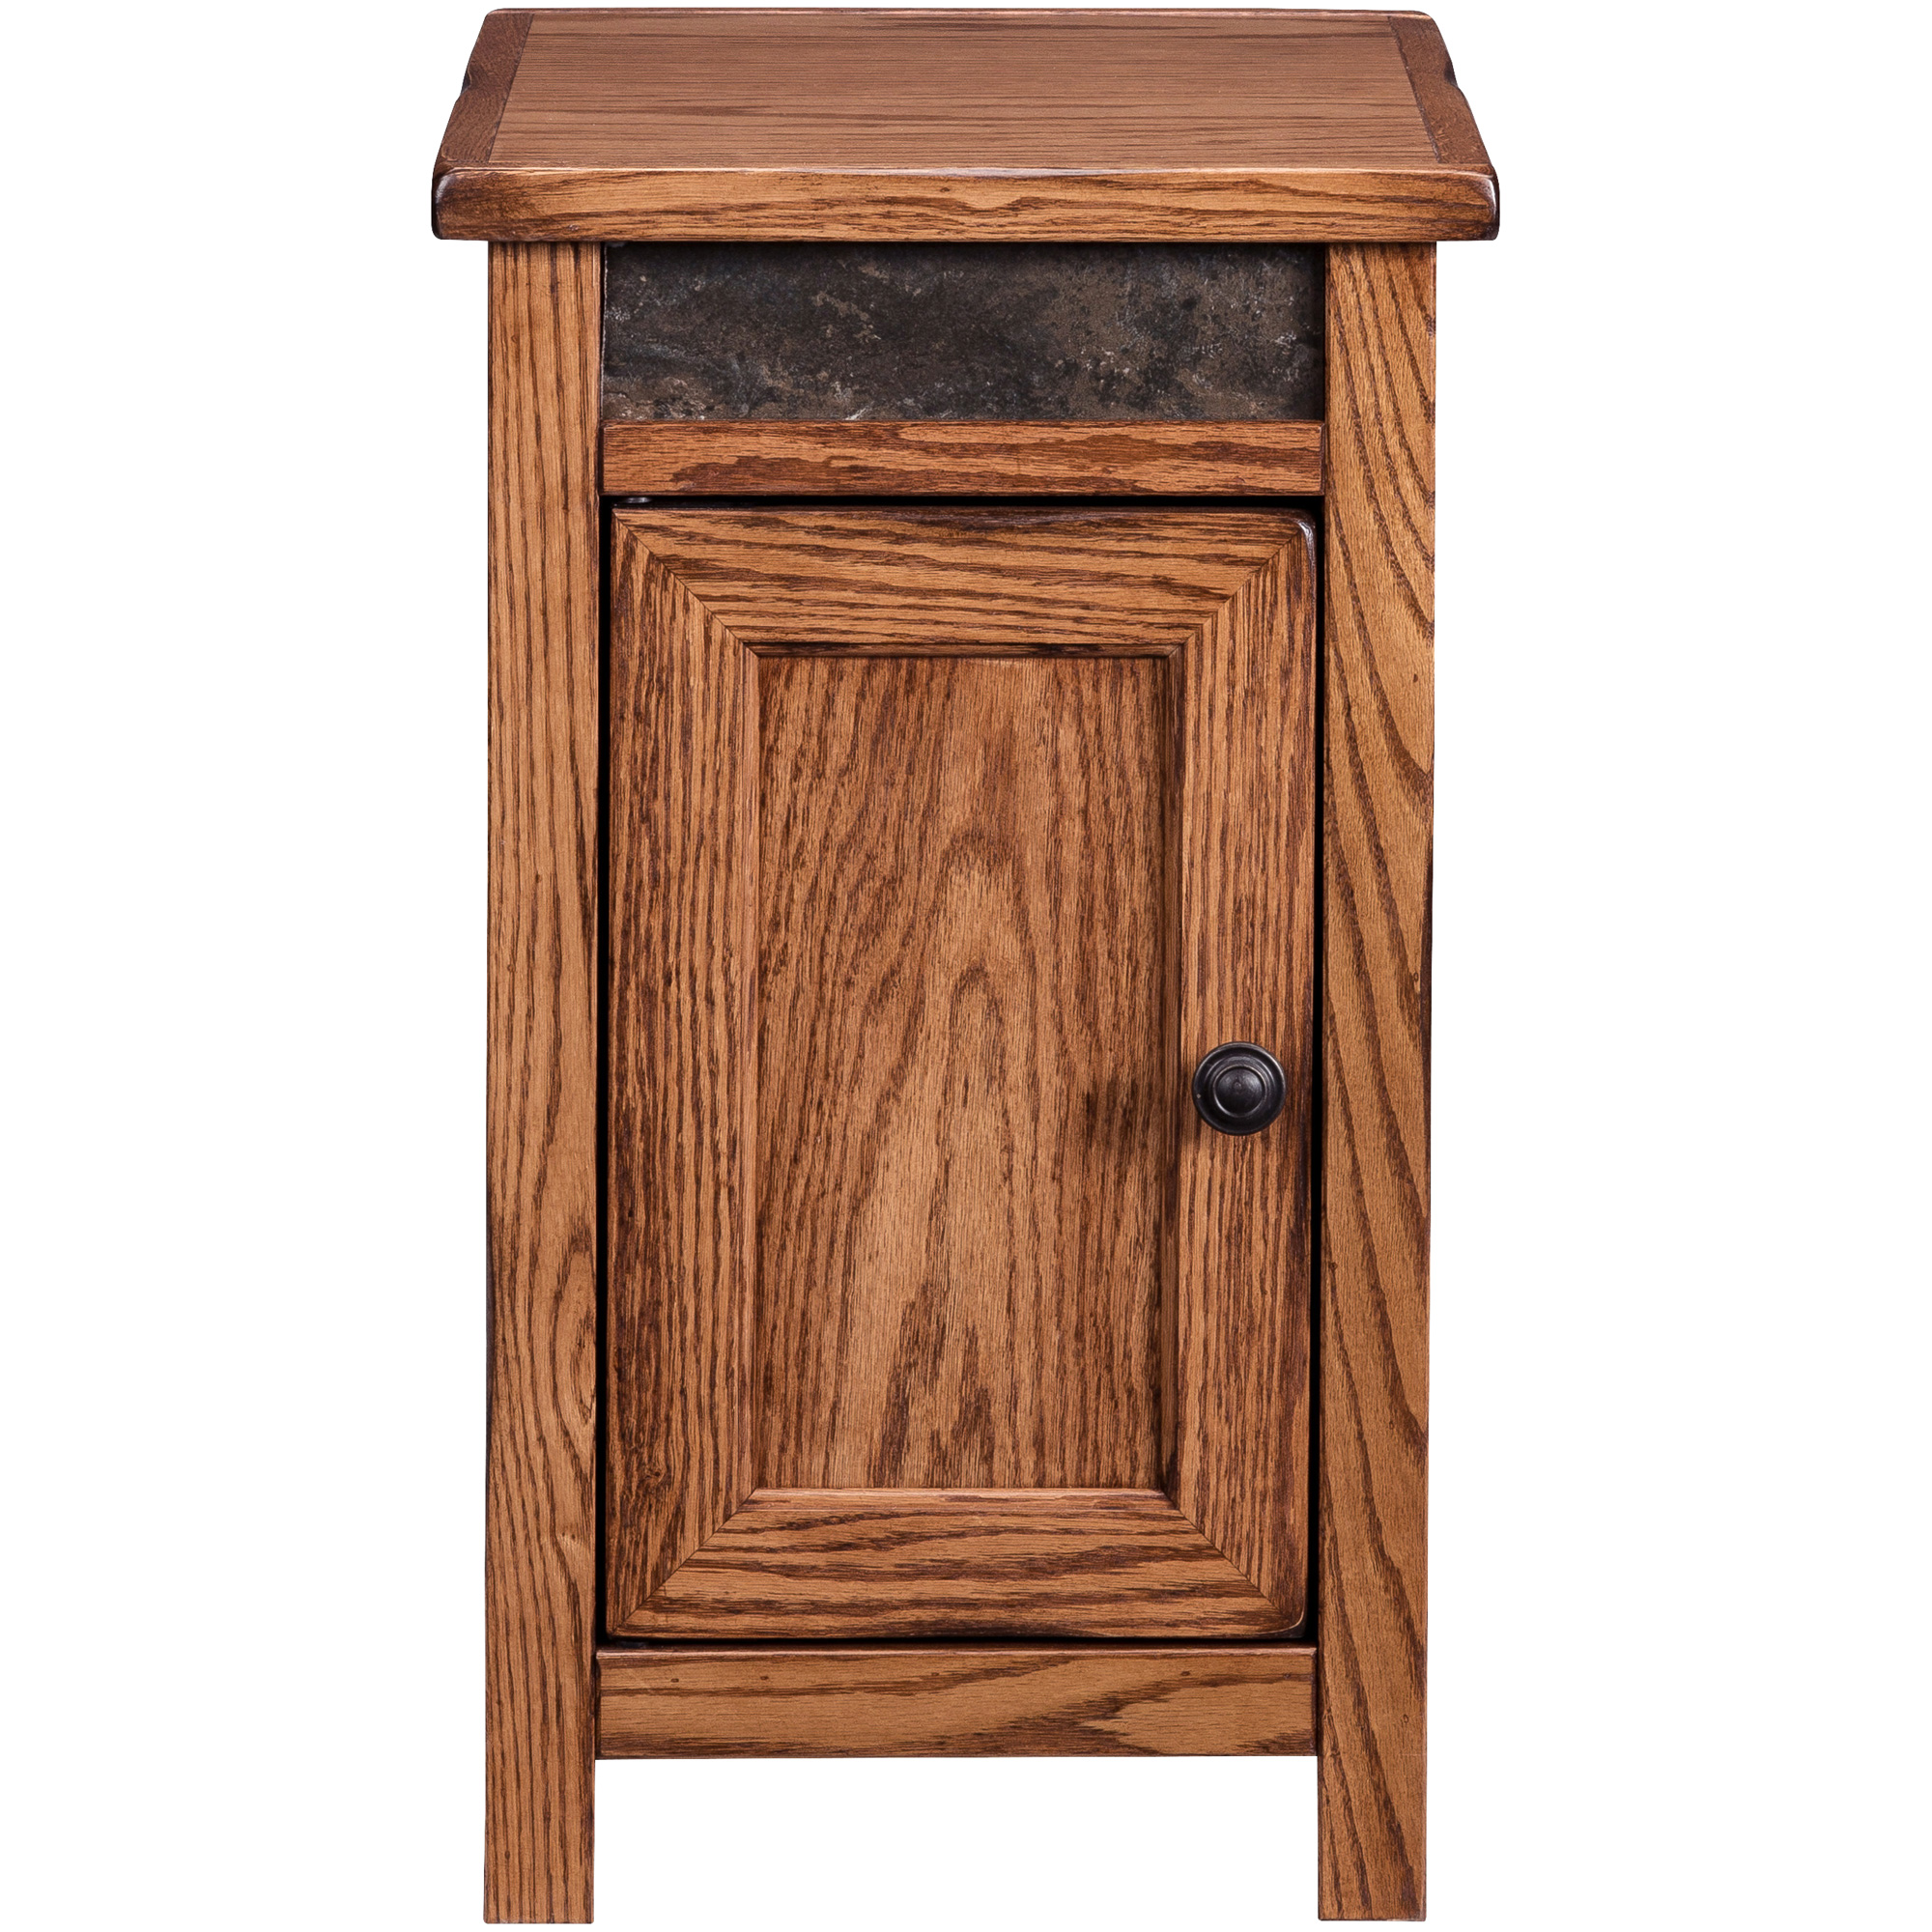 Legends Furniture | Evanston Antique Oak Rustic Storage Chairside Table